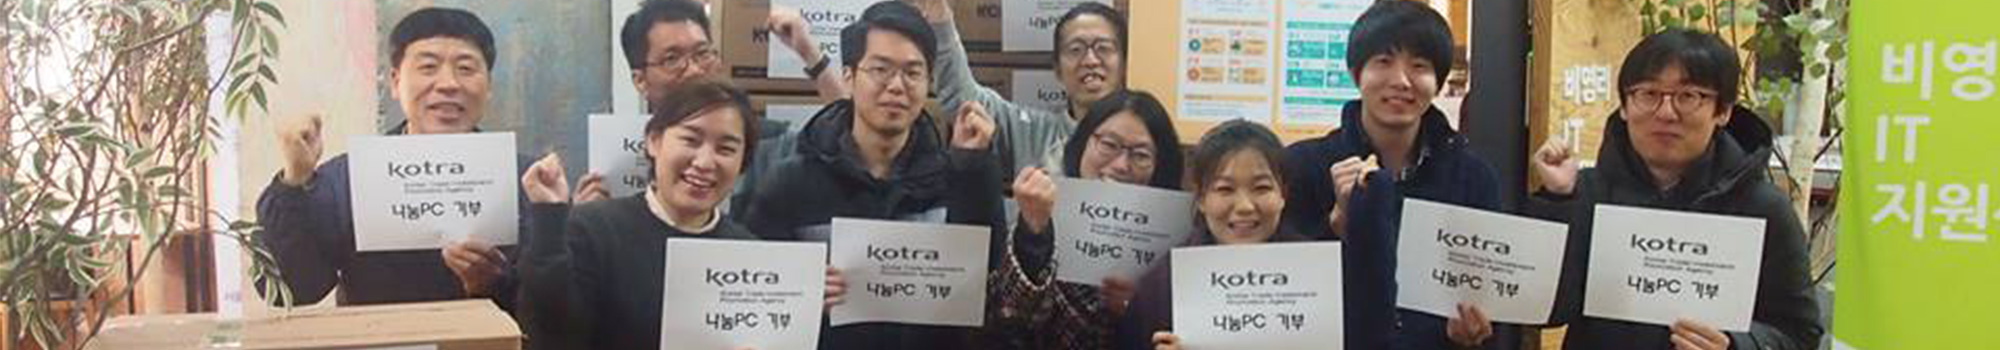 Korea Partner NPO IT Support Center